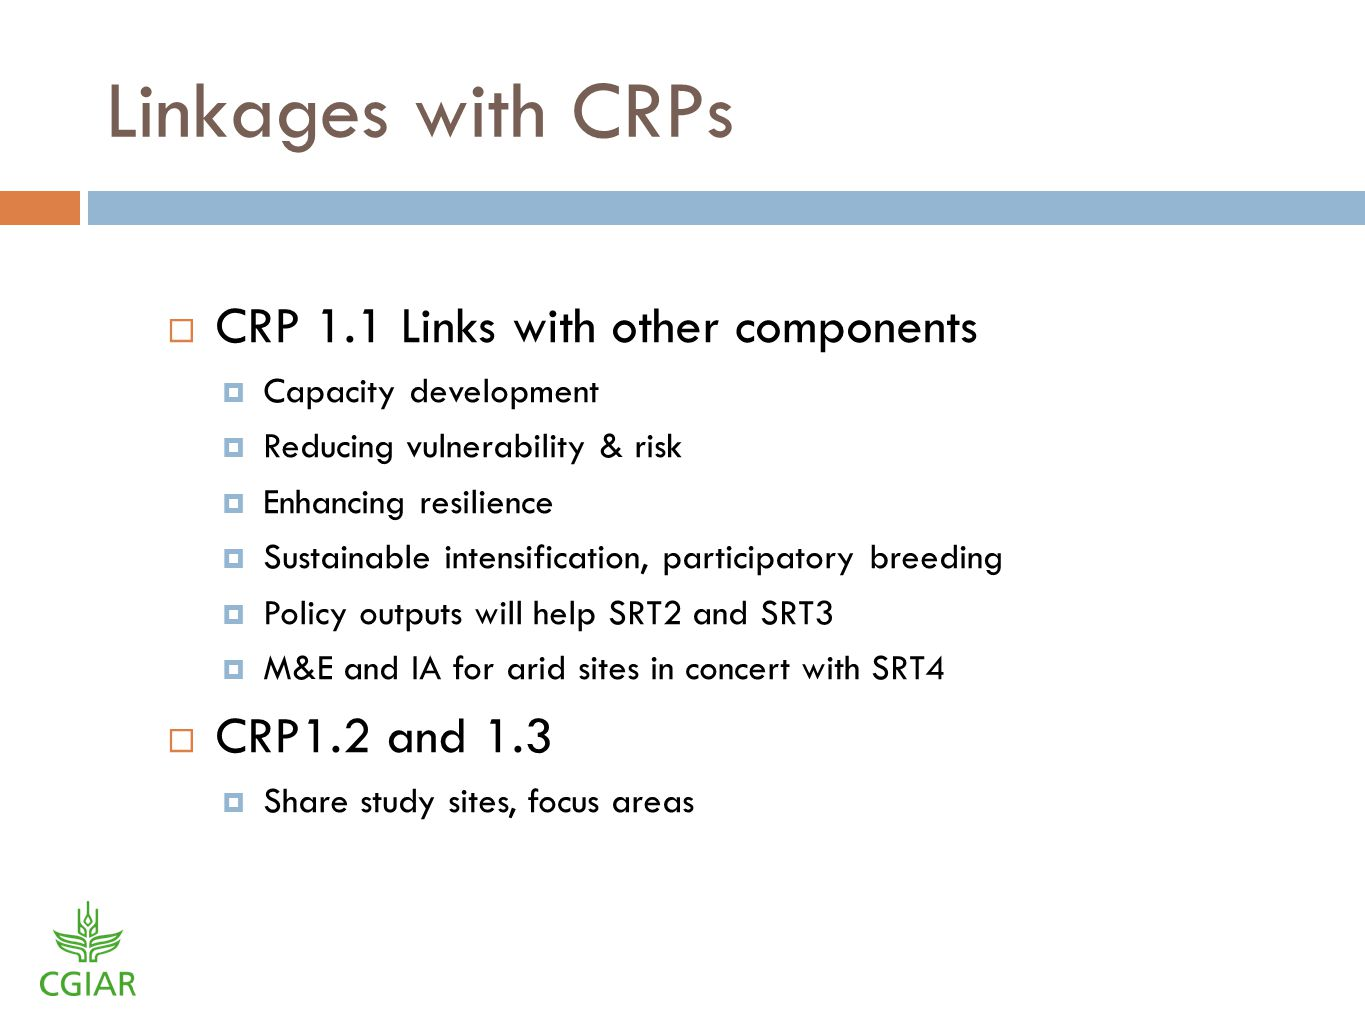 Linkages with CRPs CRP 1.1 Links with other components Capacity development Reducing vulnerability & risk Enhancing resilience Sustainable intensification, participatory breeding Policy outputs will help SRT2 and SRT3 M&E and IA for arid sites in concert with SRT4 CRP1.2 and 1.3 Share study sites, focus areas